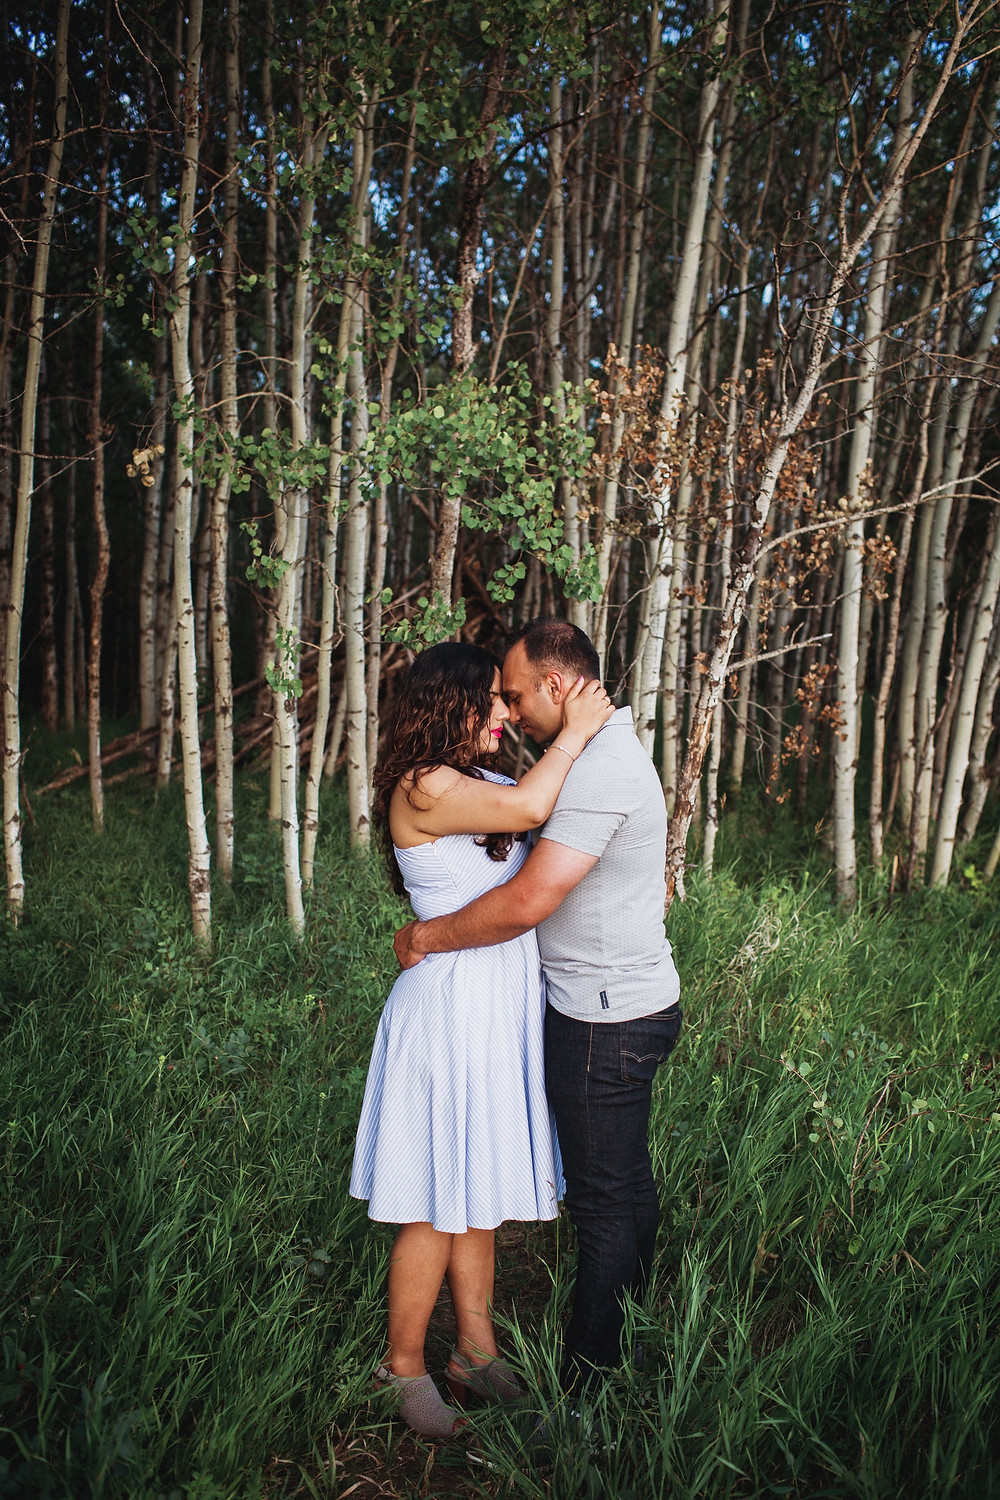 Forest love story session featuring newly engaged couple.